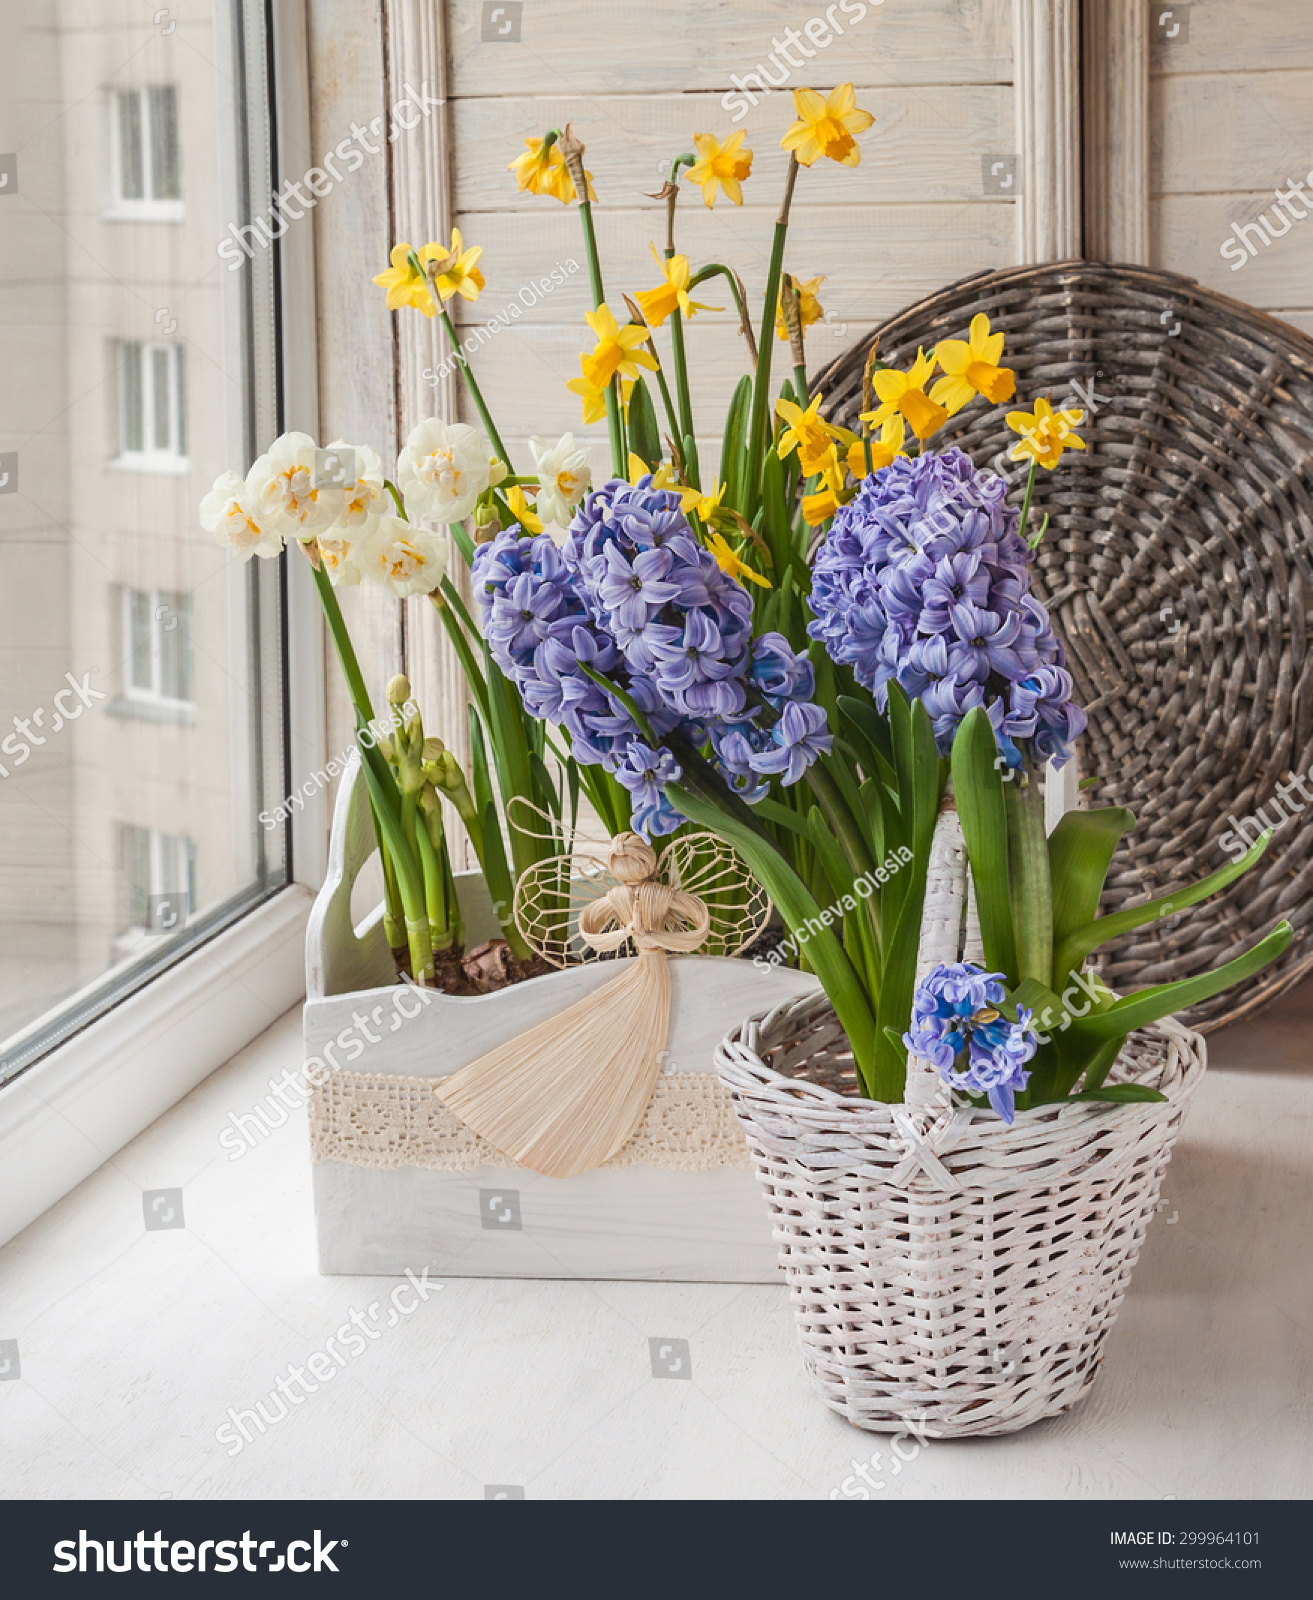 White And Yellow Daffodils And Hyacinth In Flower Box Decorated With An  Angel On The Balcony Window | EZ Canvas